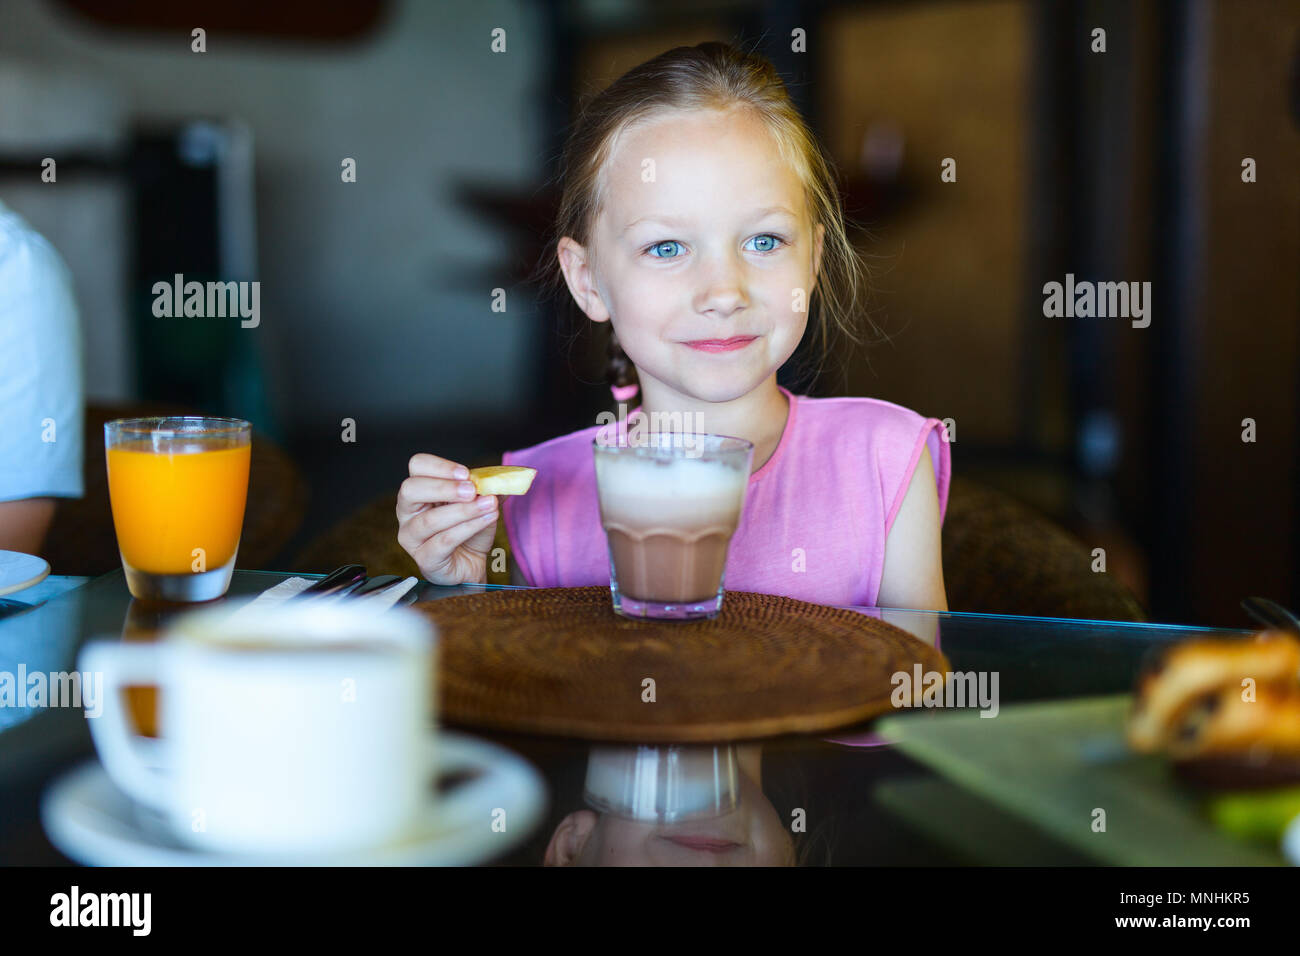 Adorable little girl in restaurant drinking hot chocolate - Stock Image